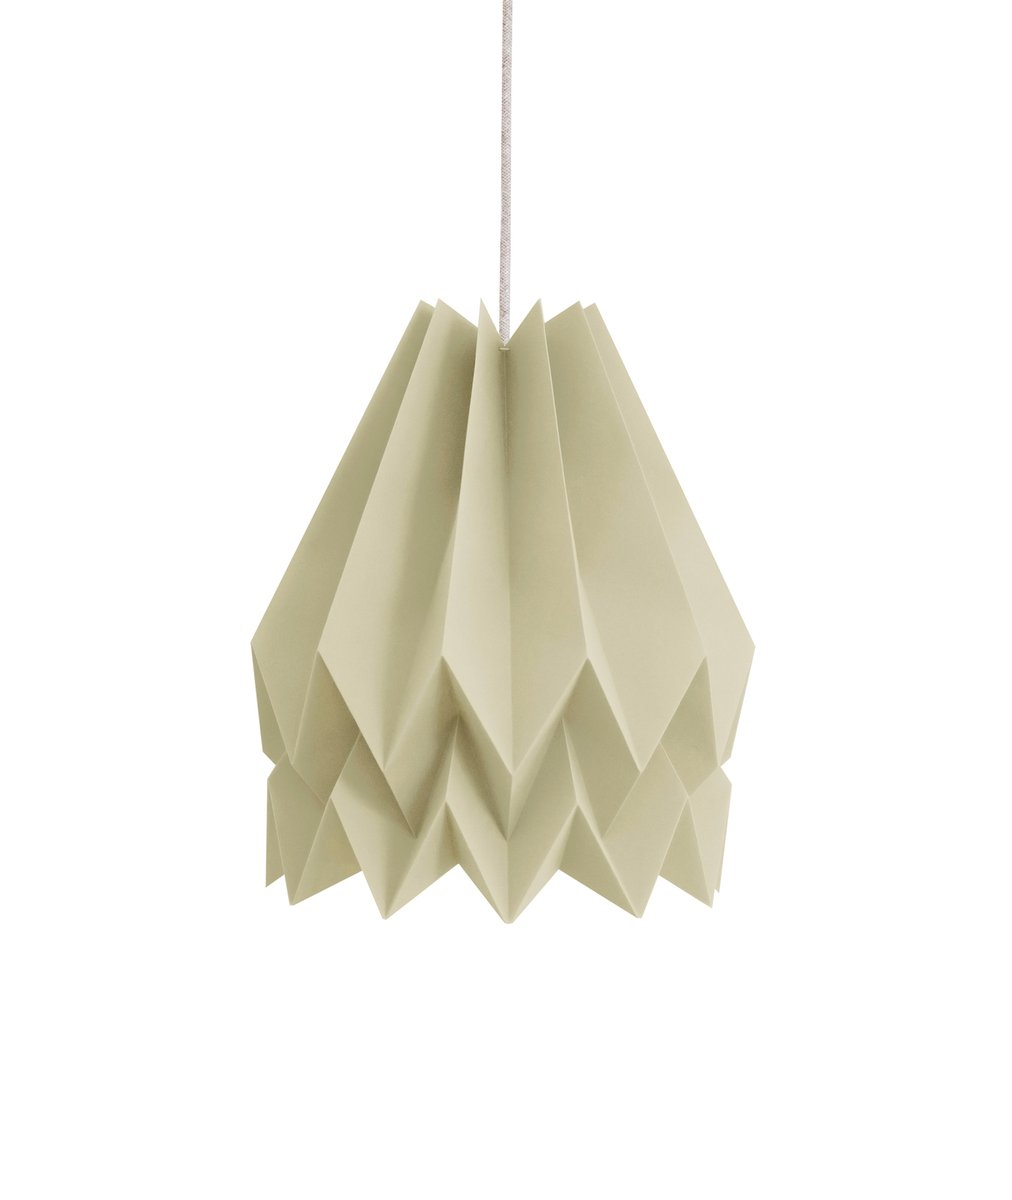 Light Taupe Origami Lamp By Orikomi